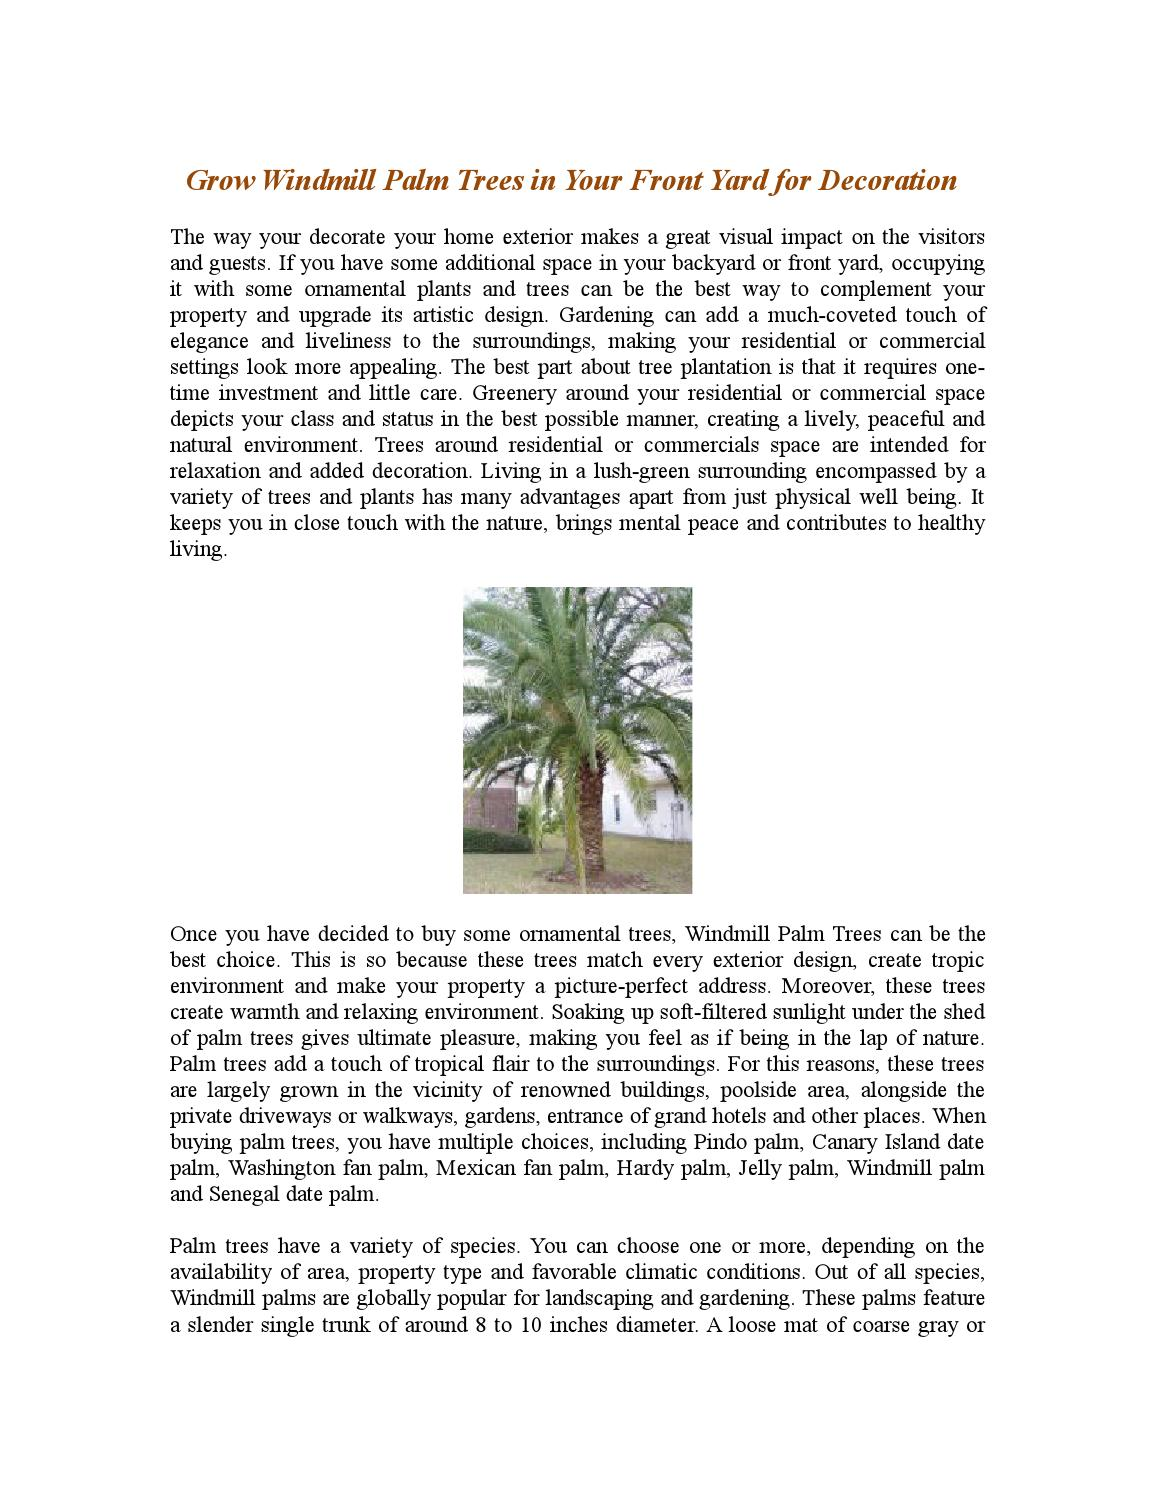 Grow windmill palm trees in your front yard for decoration by ...